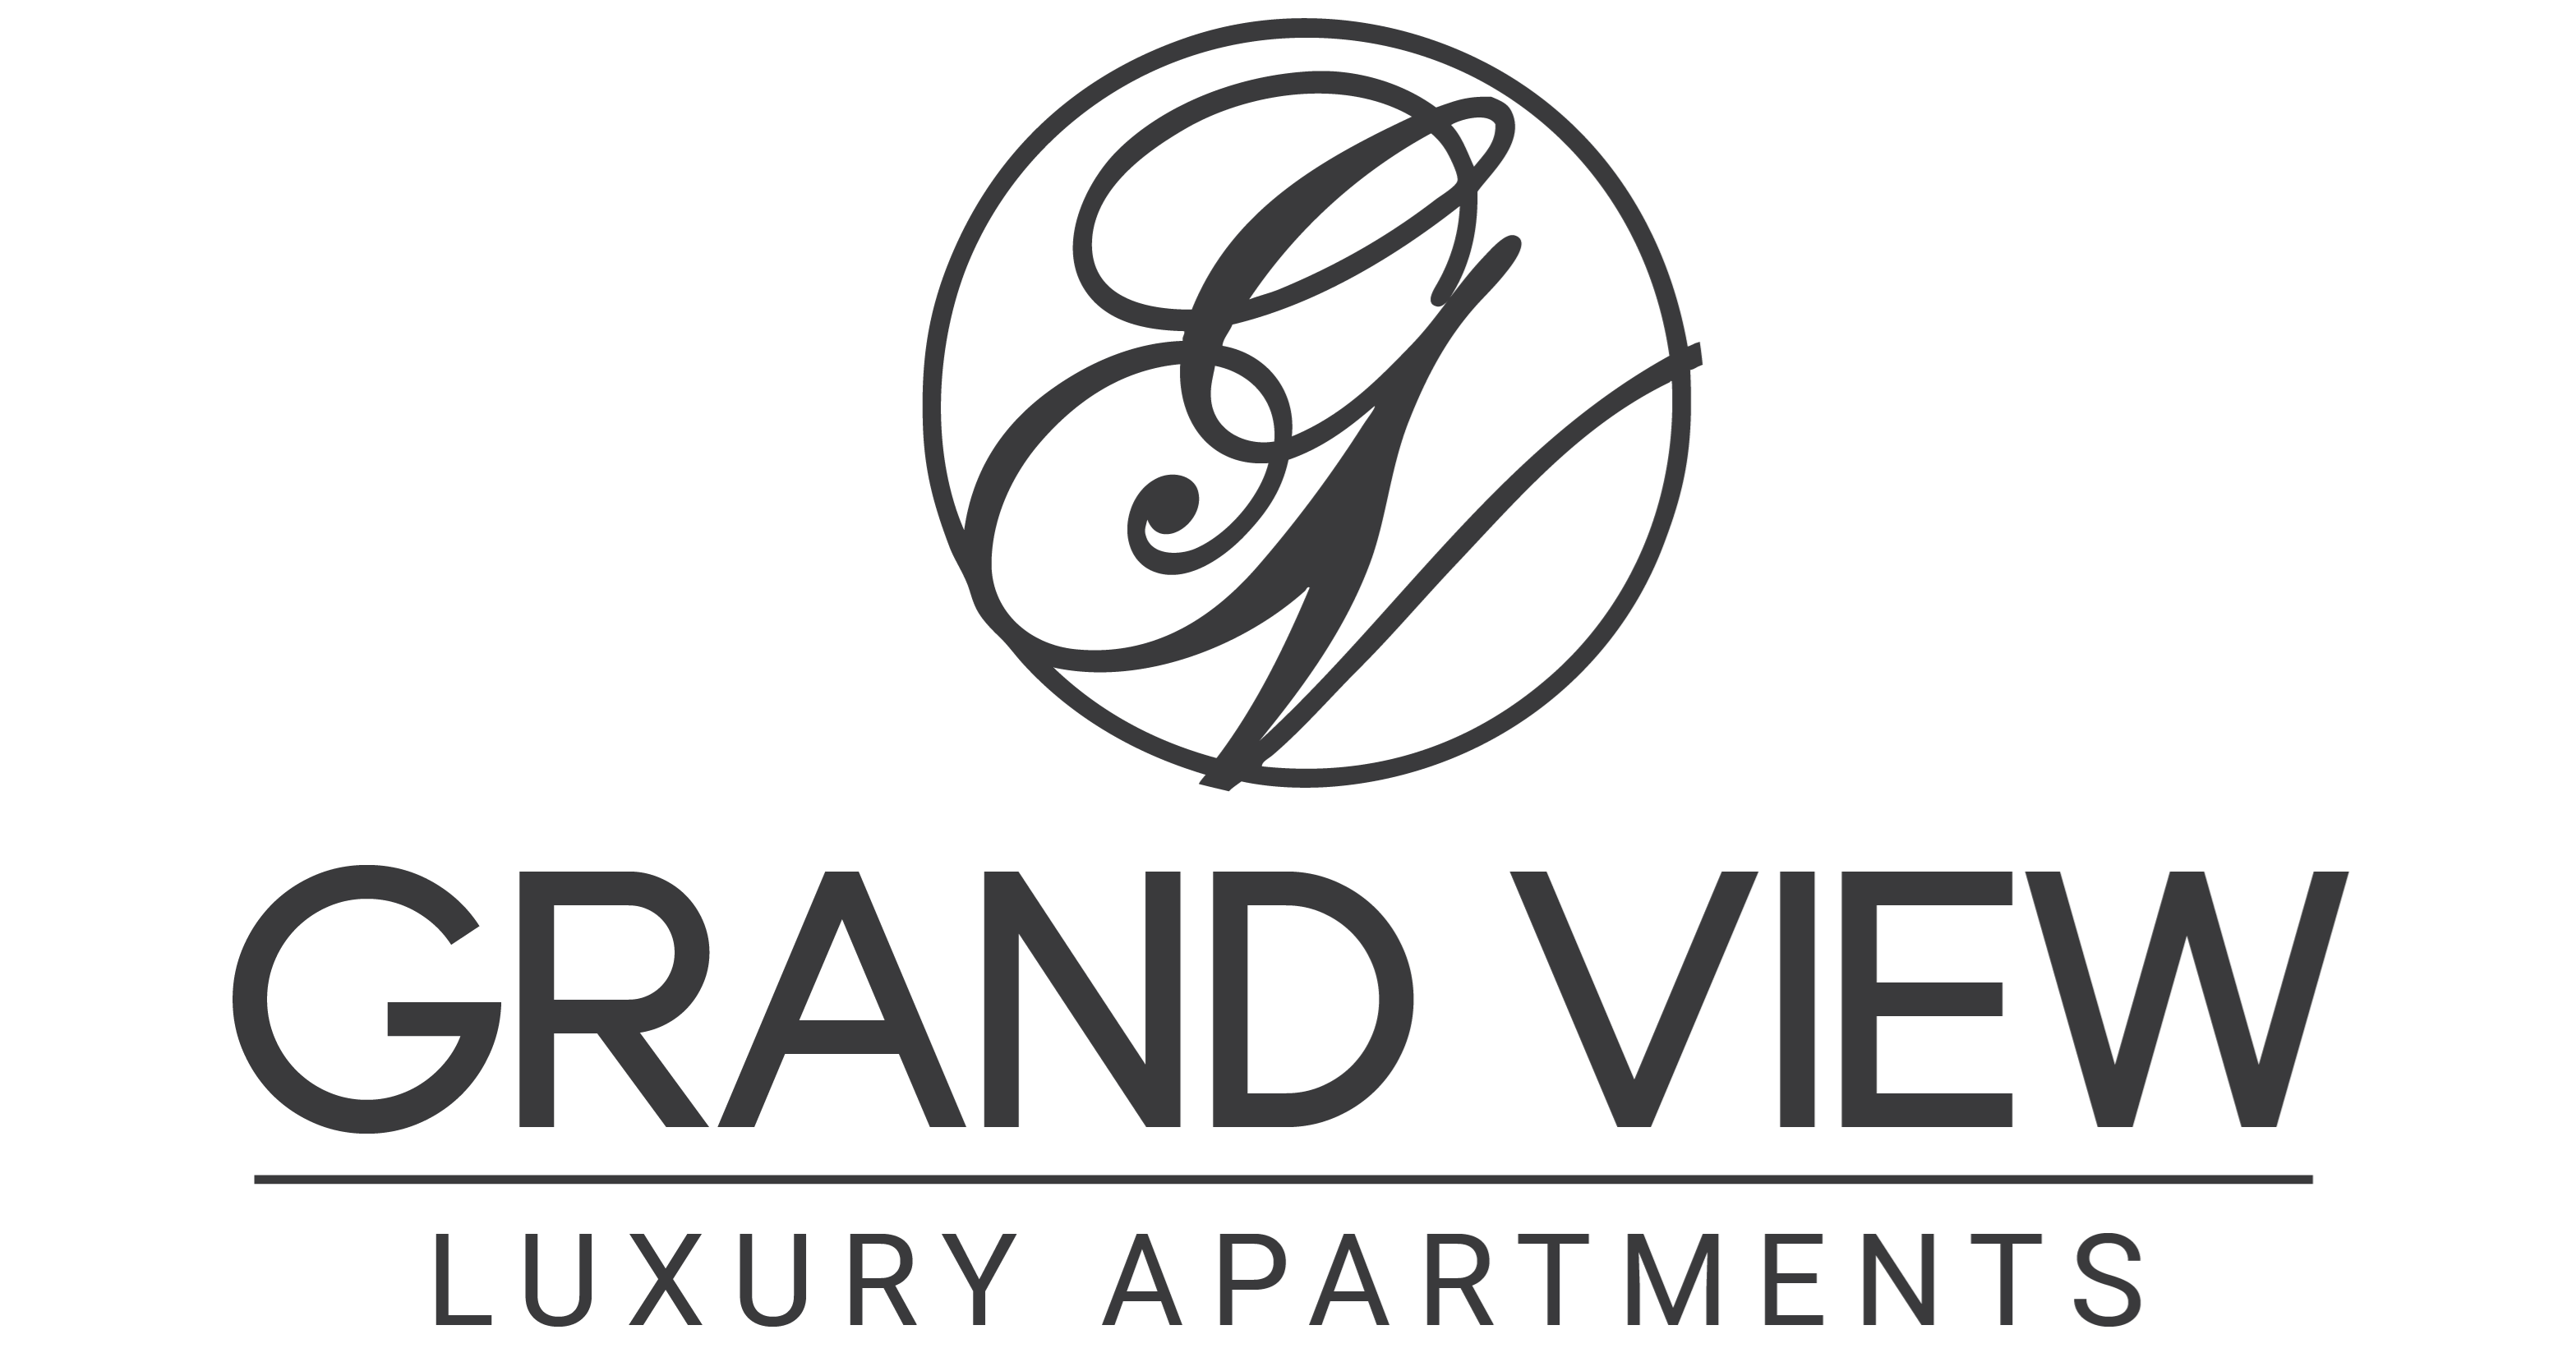 Grand View Luxury Apartments Property Logo 9